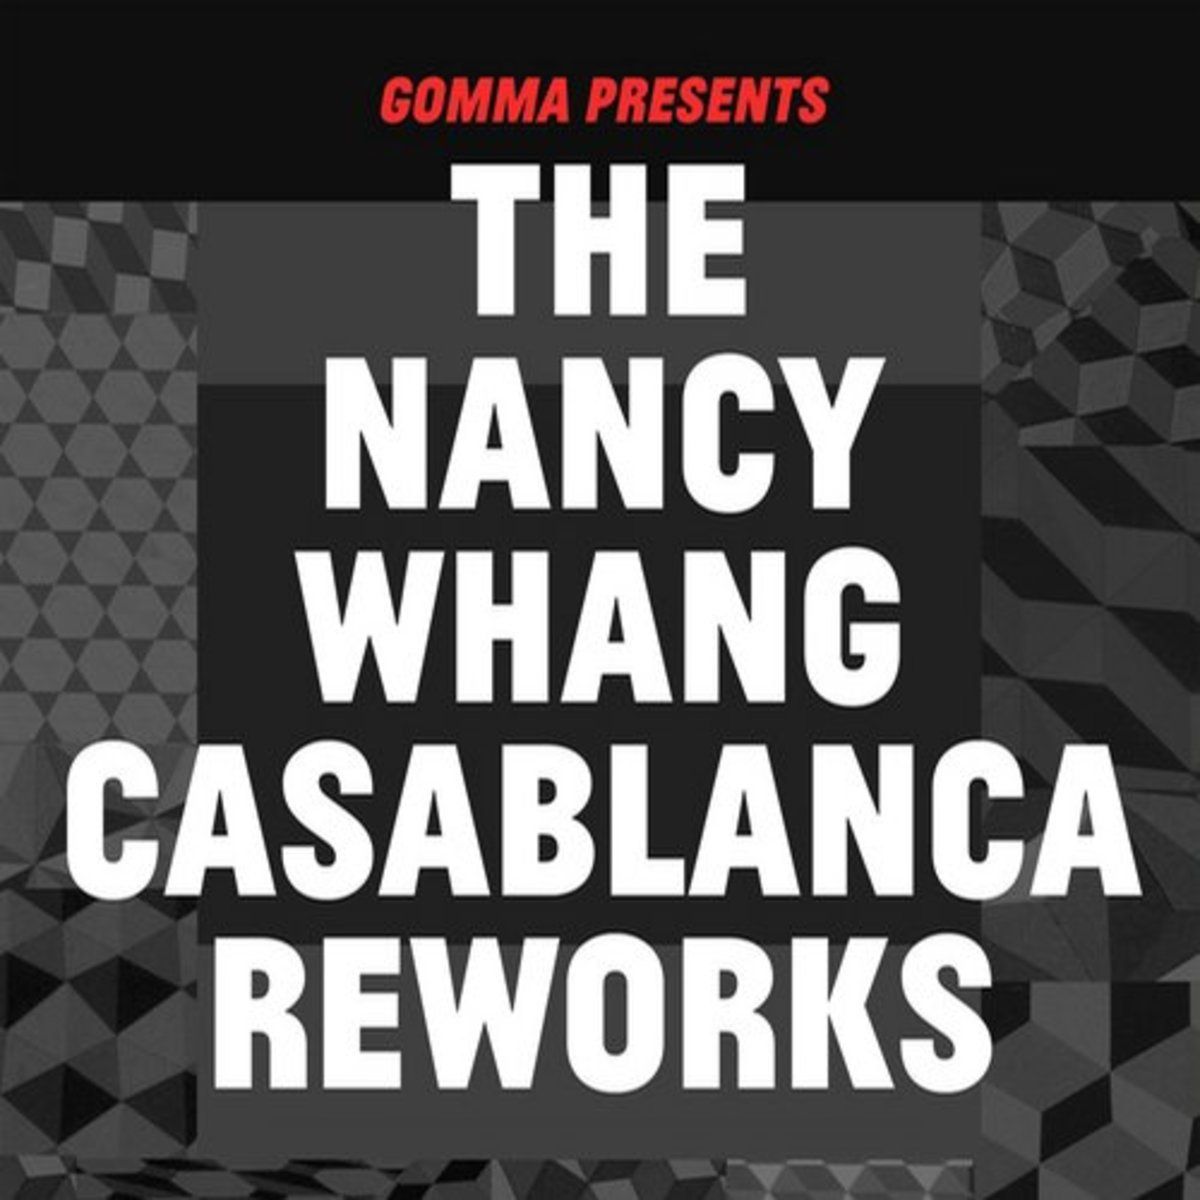 The-Nancy-Whang-Casablanca-Reworks-Gomma-Gomma203-2014-09-12